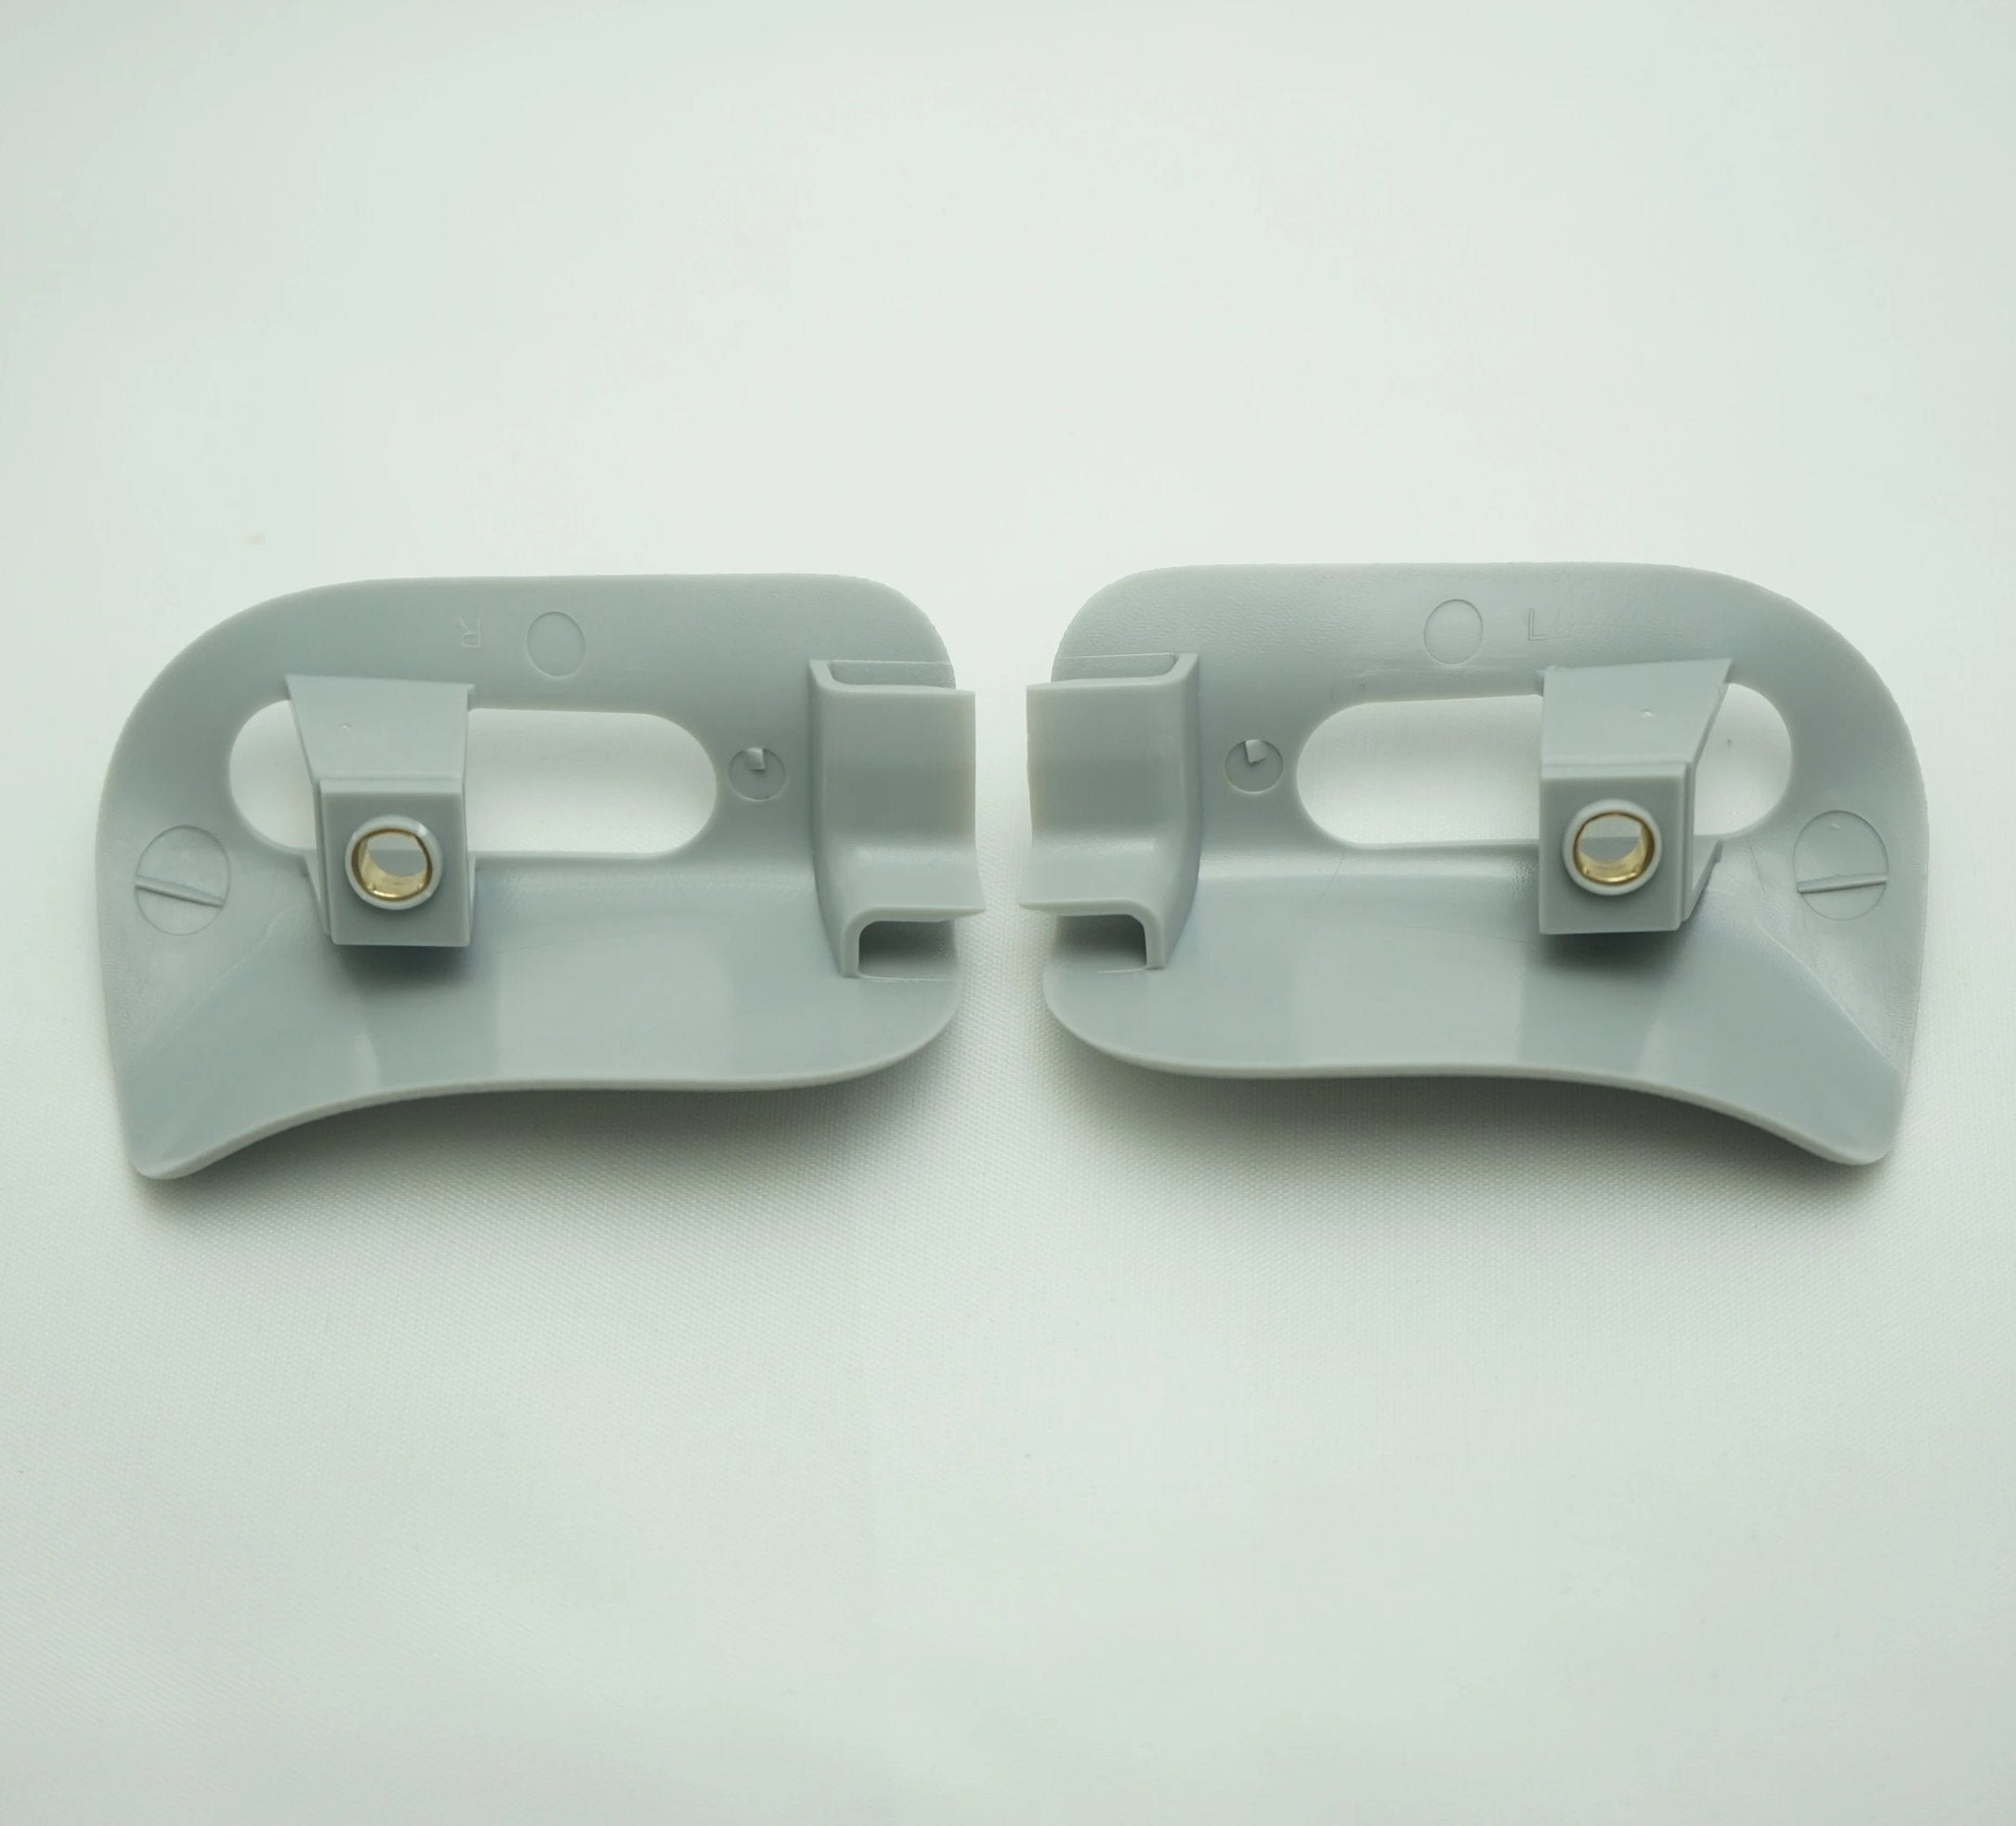 Pair of Sun Visor Trim Caps - Orion Gray - Classic Trim Parts